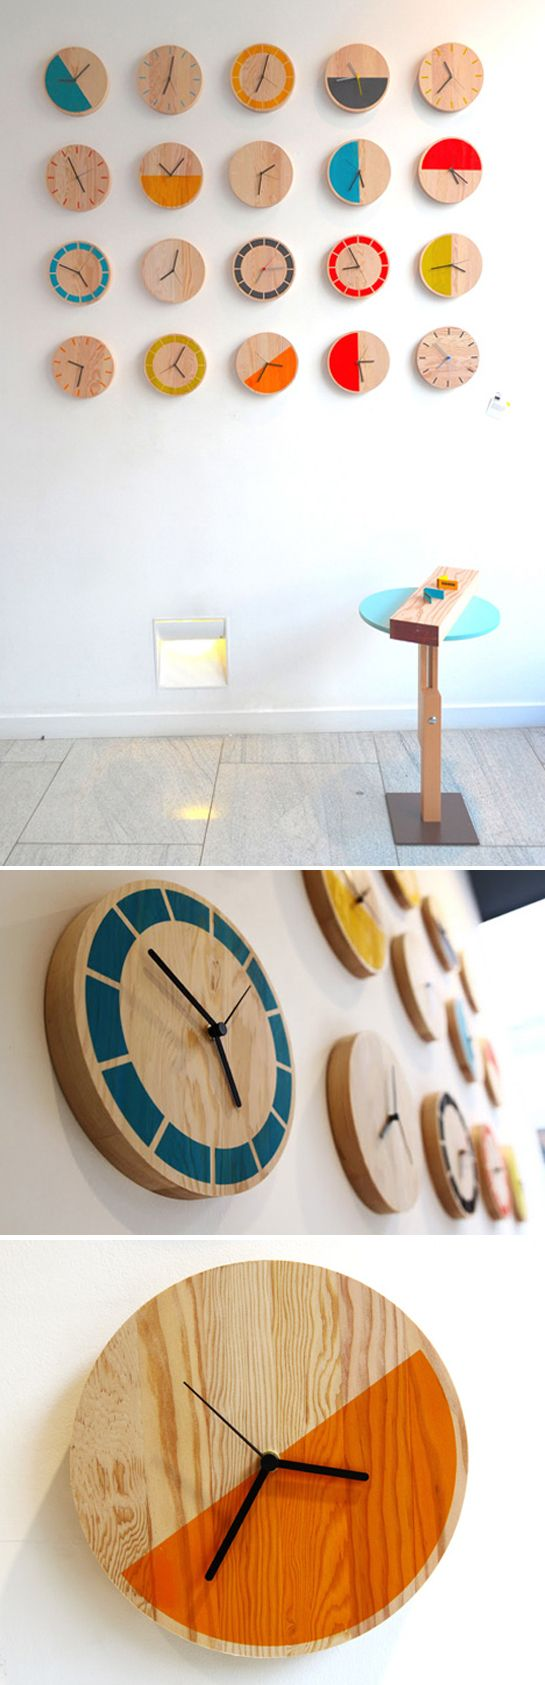 Love these minimal, bright-colored clocks. Wouldn't they make great gifts? Not sure if they are for sale though. They are currently on exhibition atGlasgow's GOODD Ltd exhibition space…